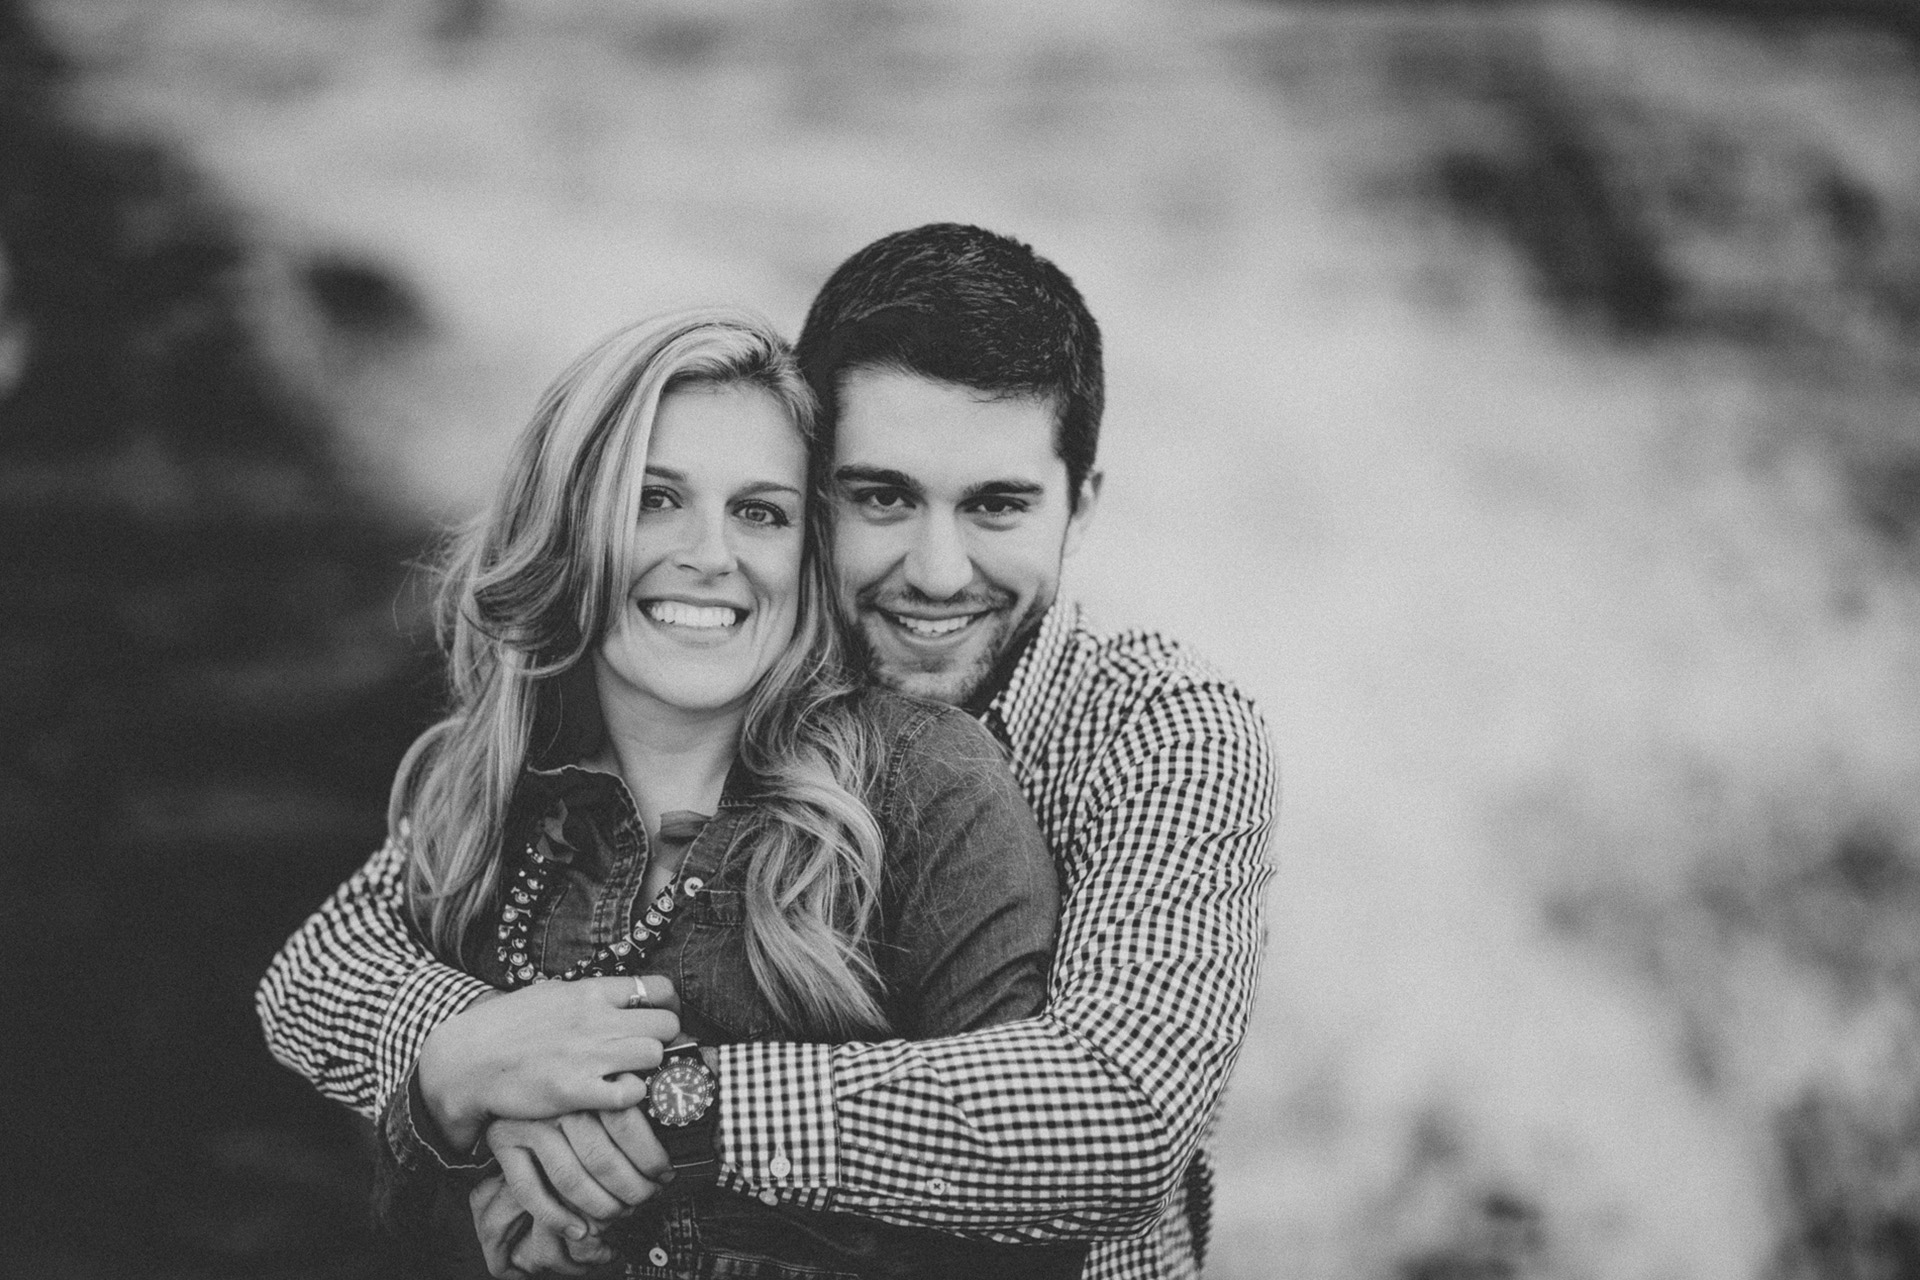 Winter Engagement Session in Bay Village - Too Much Awesomeness - Cleveland Wedding Photographer 18.jpg